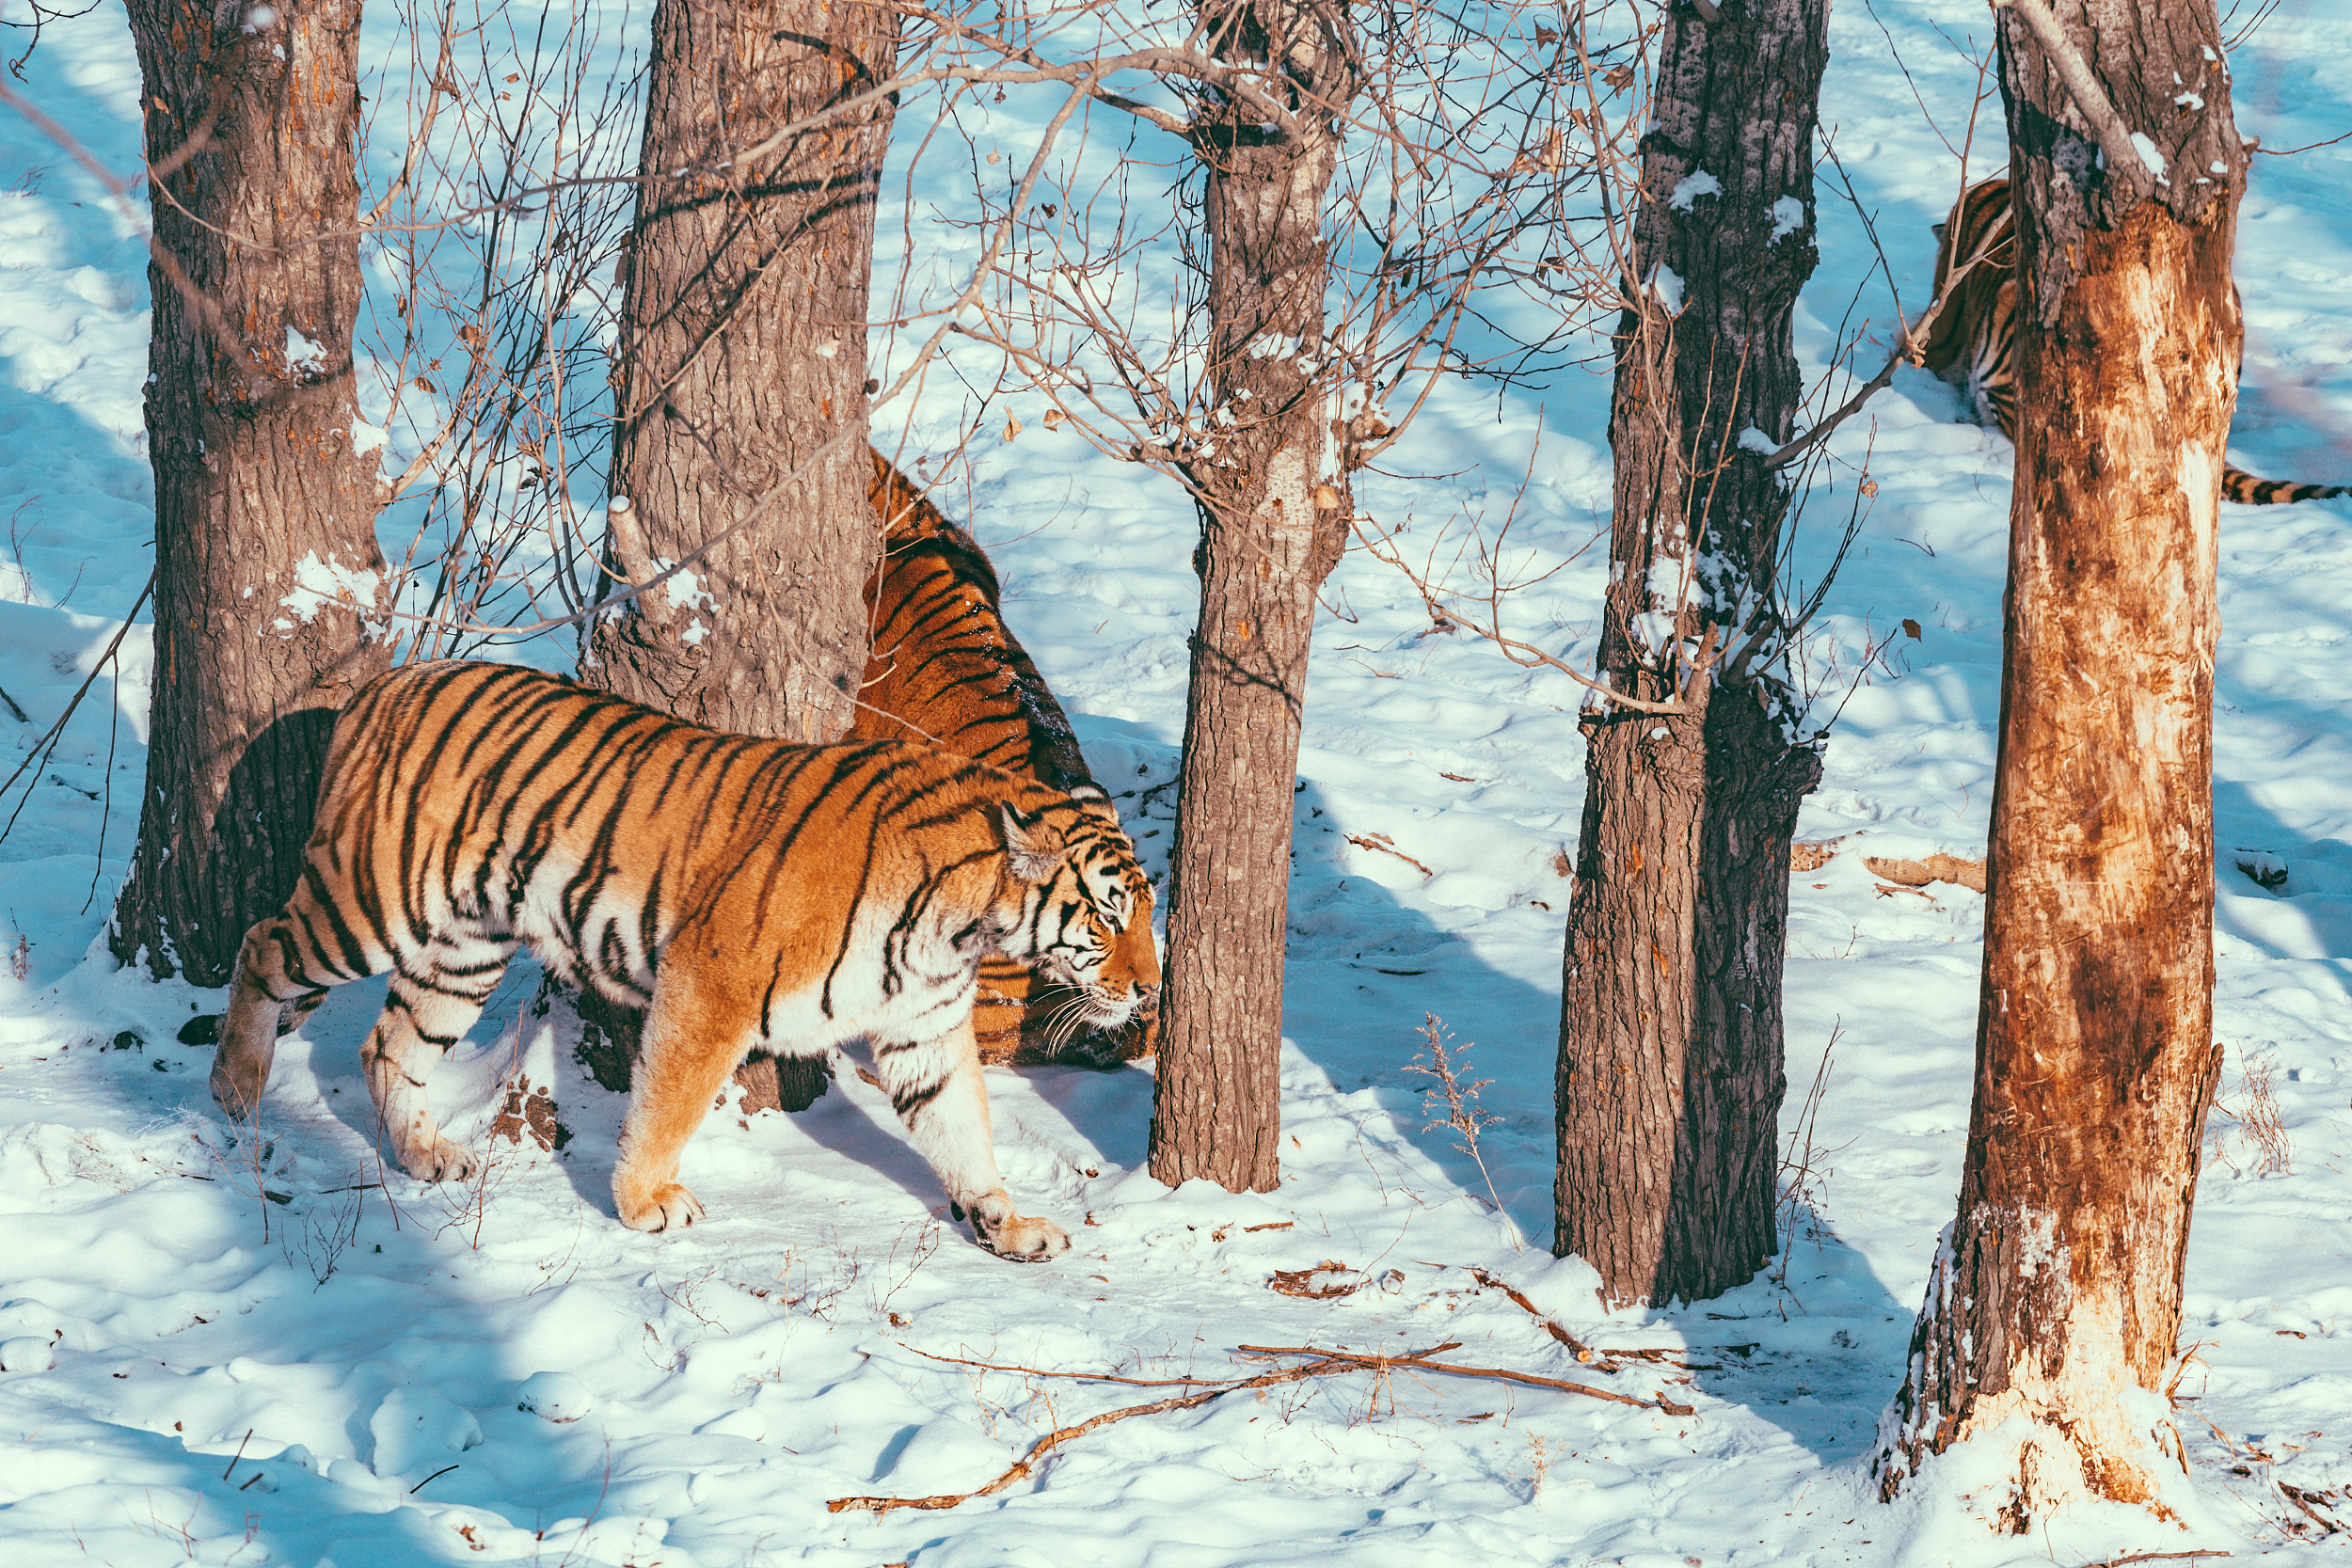 Northeast Tiger Forest Park